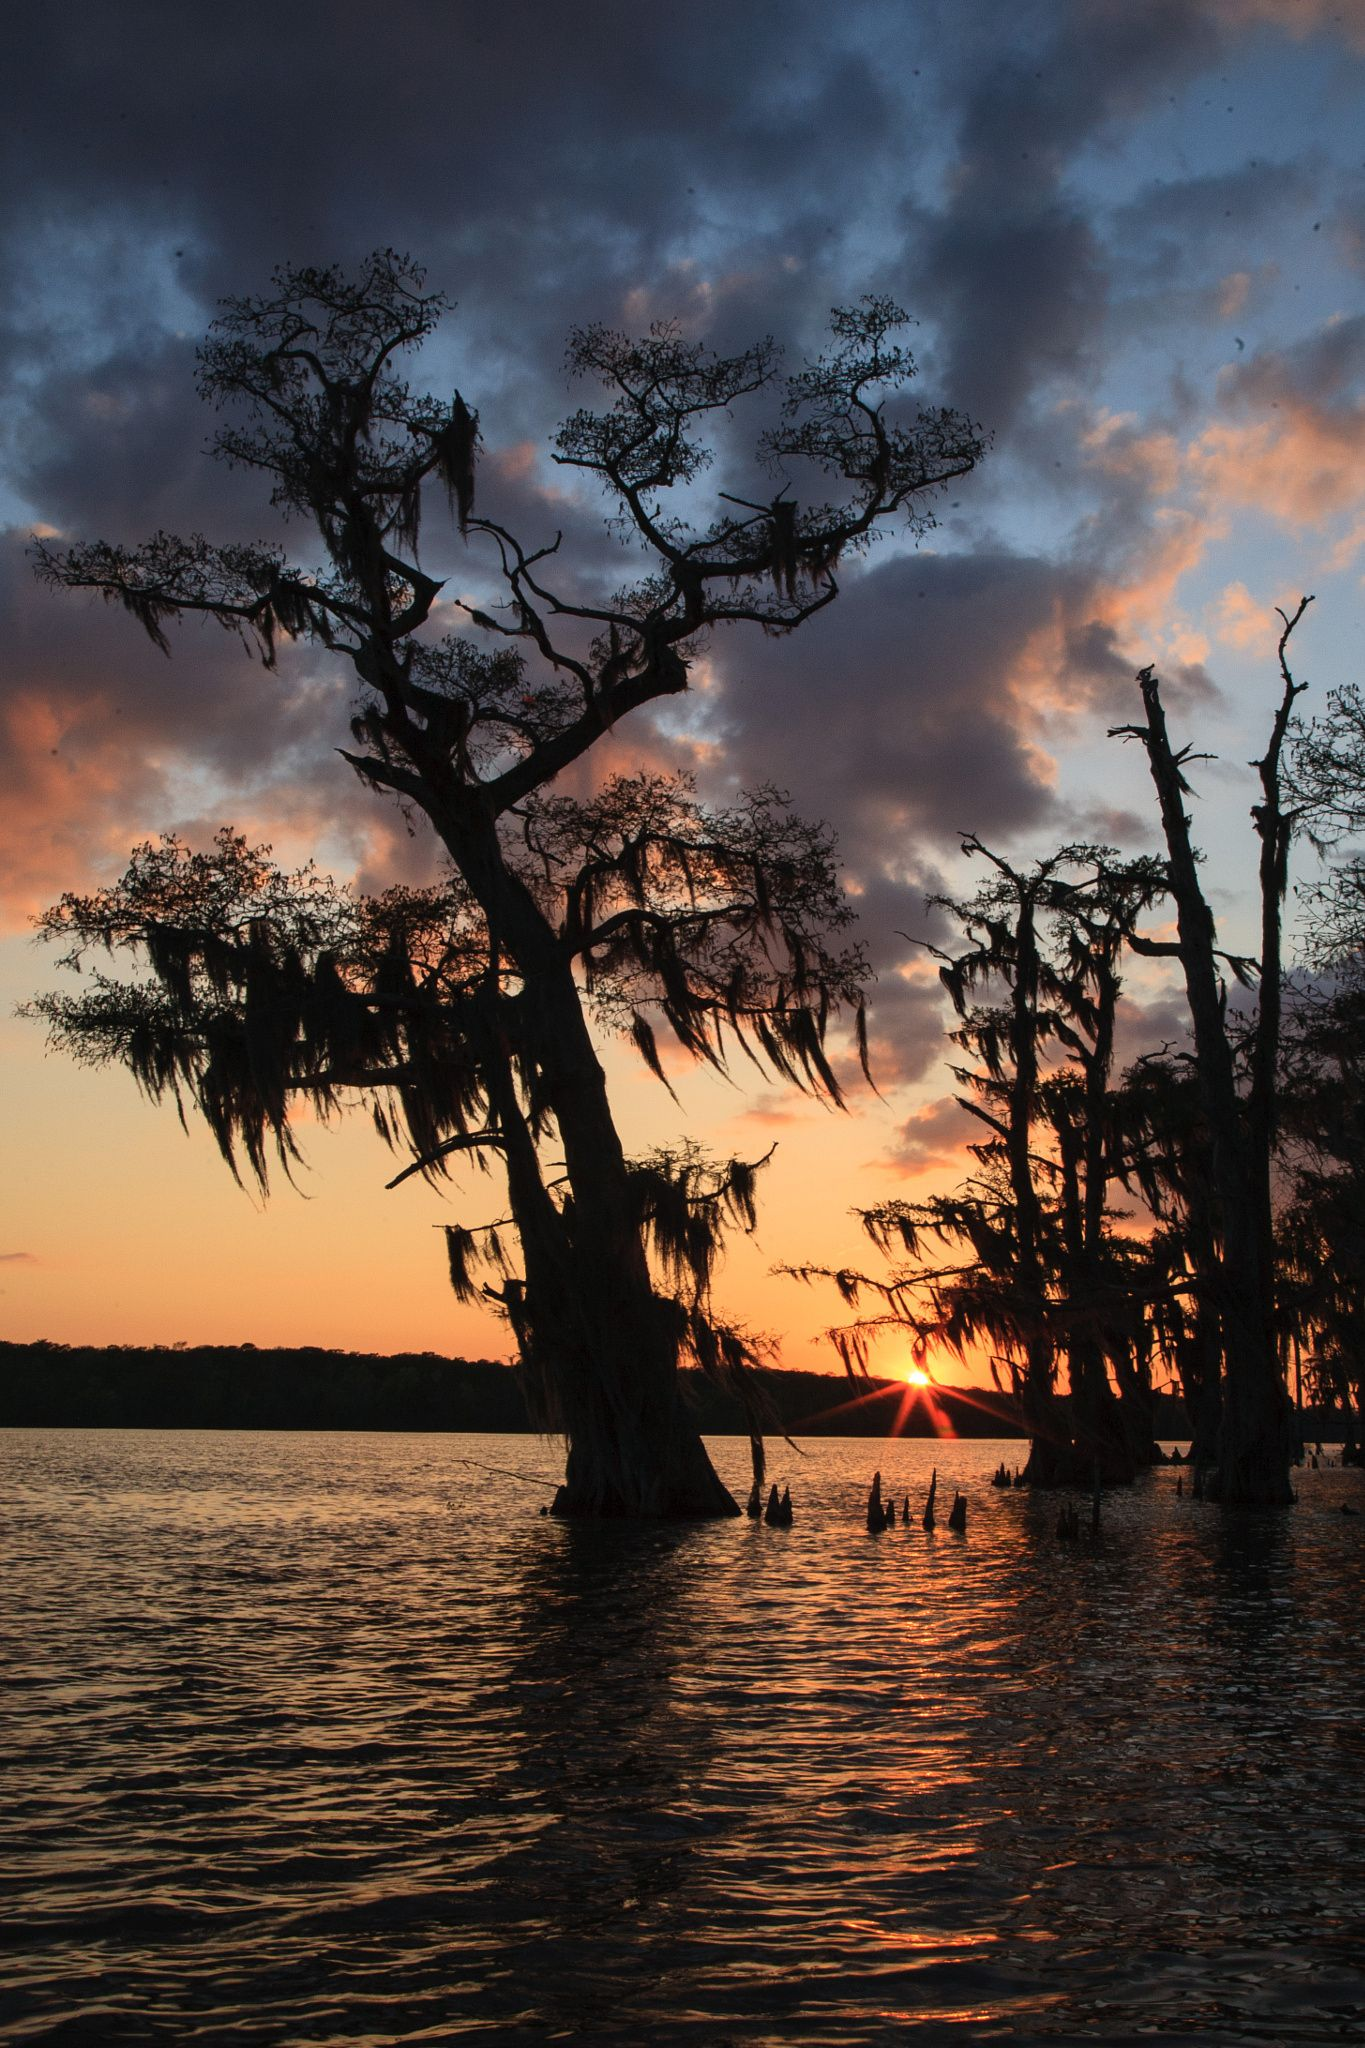 Louisiana: Sunset Belle River by Timothy Muffitt on 500px